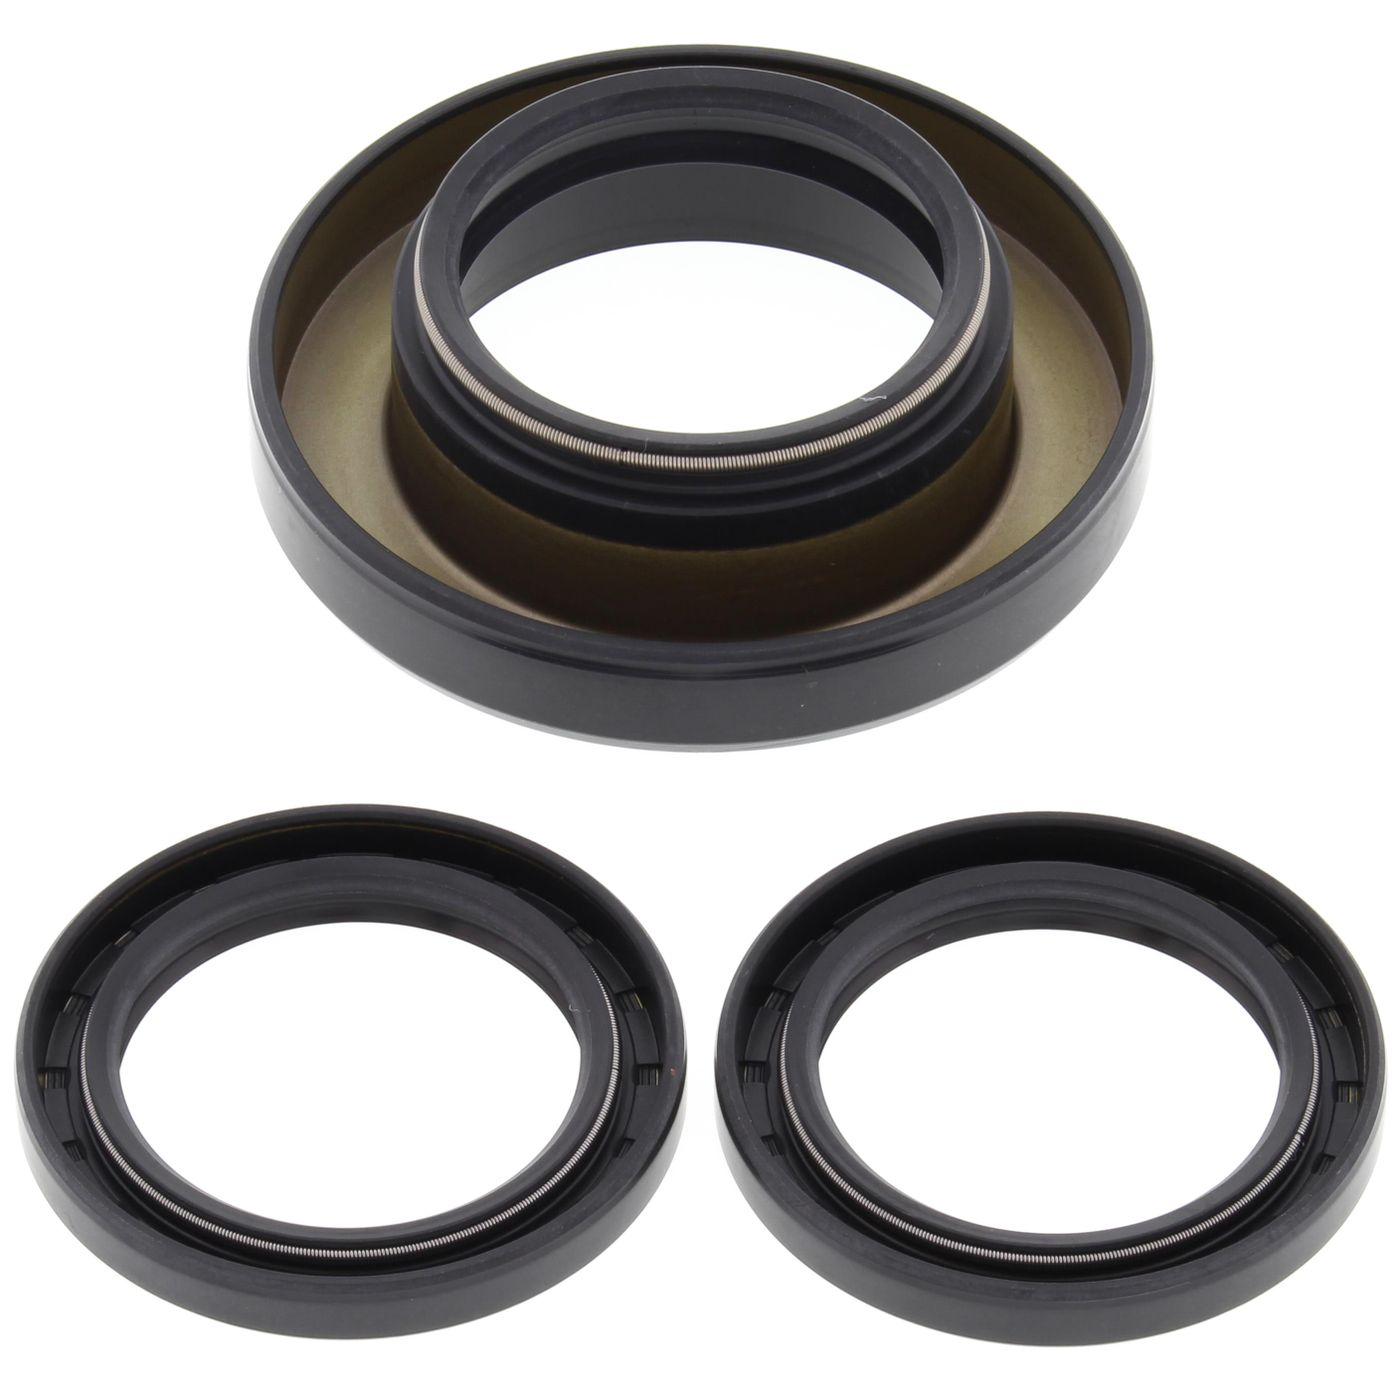 Wrp Diff Seal Kits - WRP252014-5 image